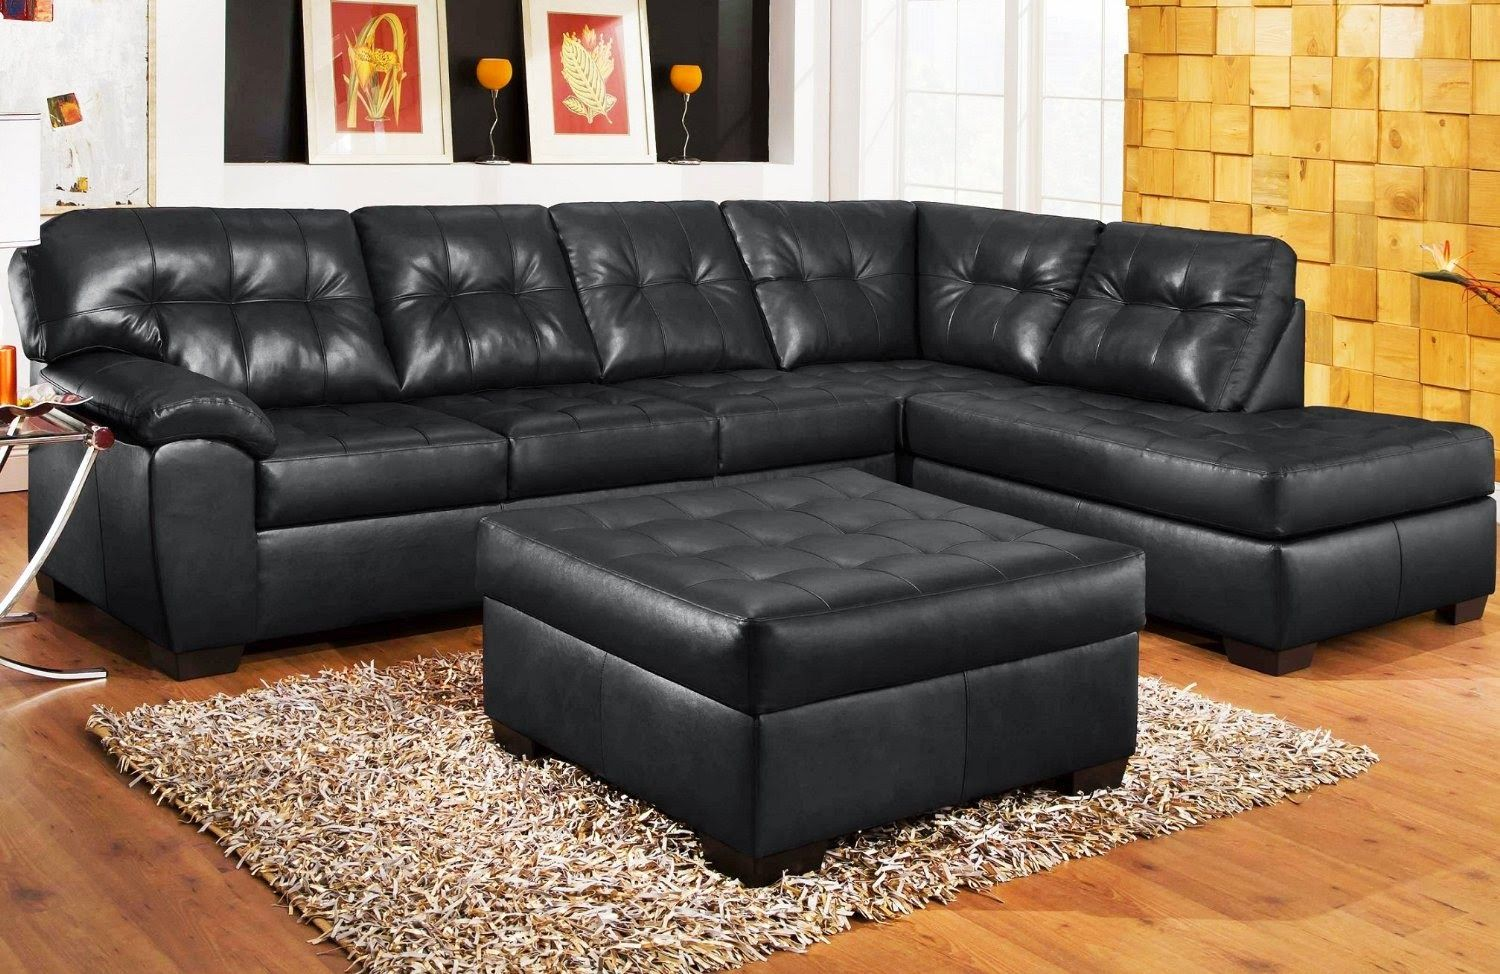 Trendy Furniture, Large Furniture, Furniture Ideas, Leather Sectional Sofas,  Bonded Leather, Furniture Collection, Private Label, Soho, Showroom